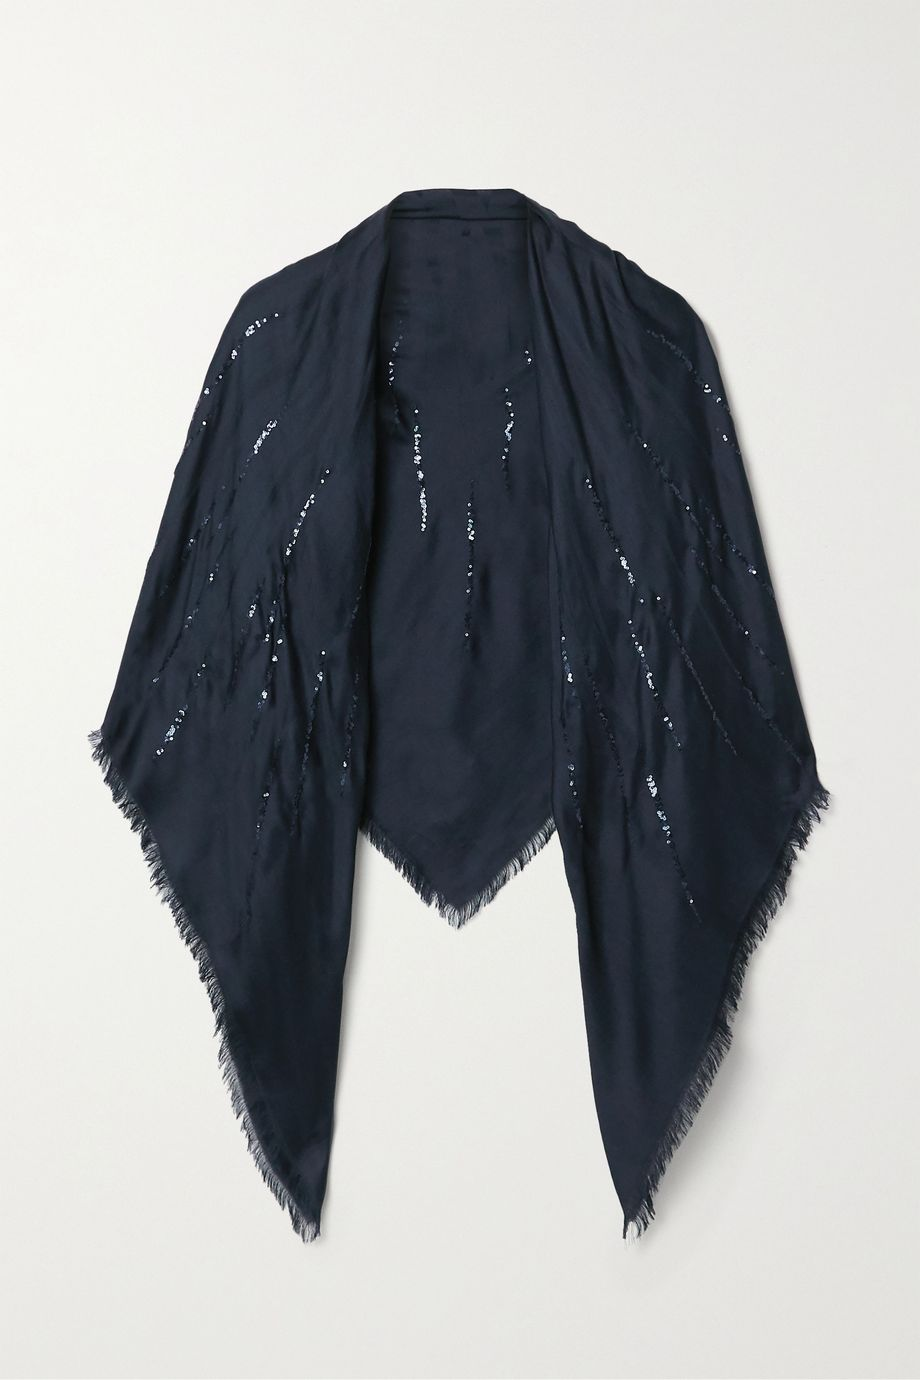 Loro Piana Fringed sequin-embellished silk scarf